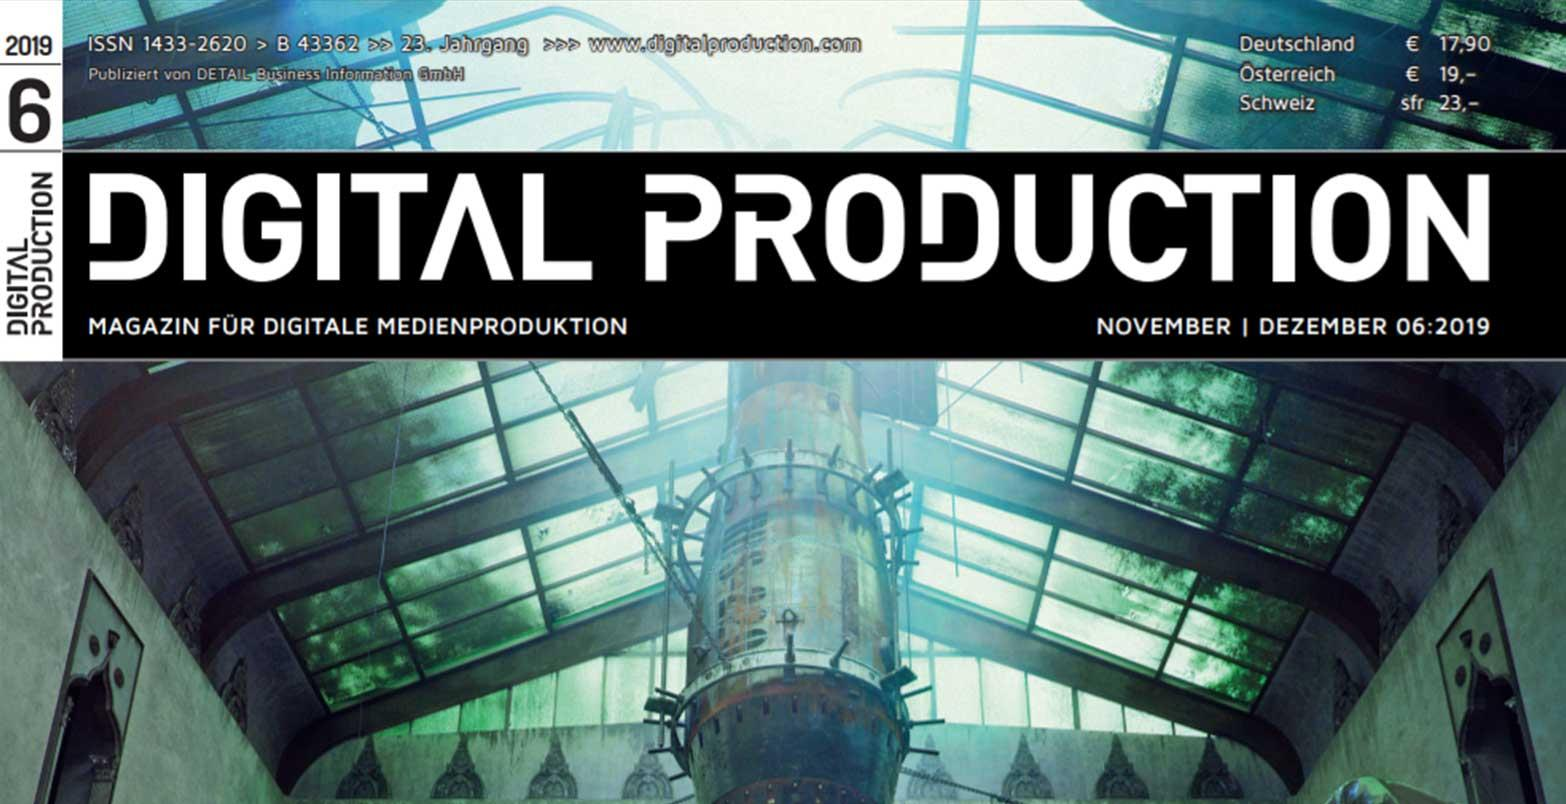 Digital Production magazine interview!